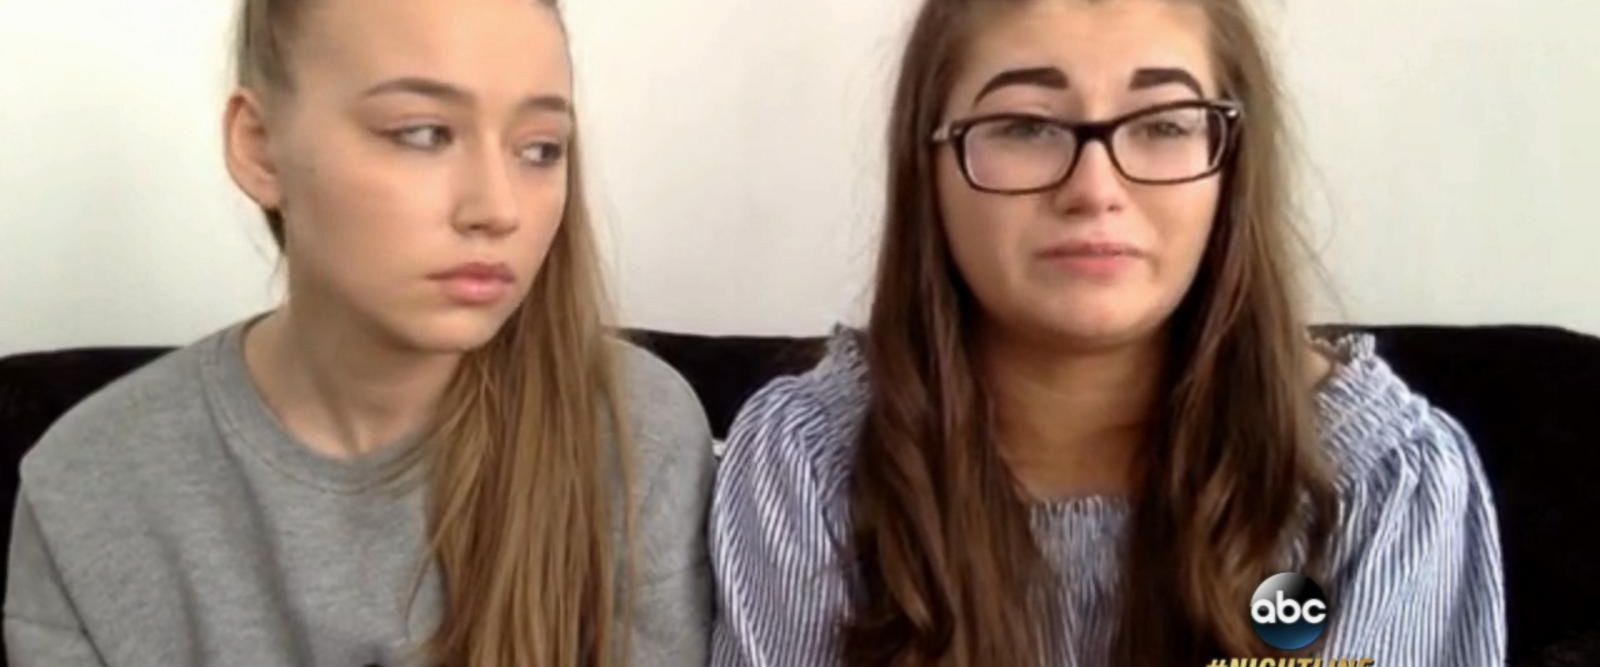 VIDEO: Manchester concert terror attack survivors describe chaos, helping others